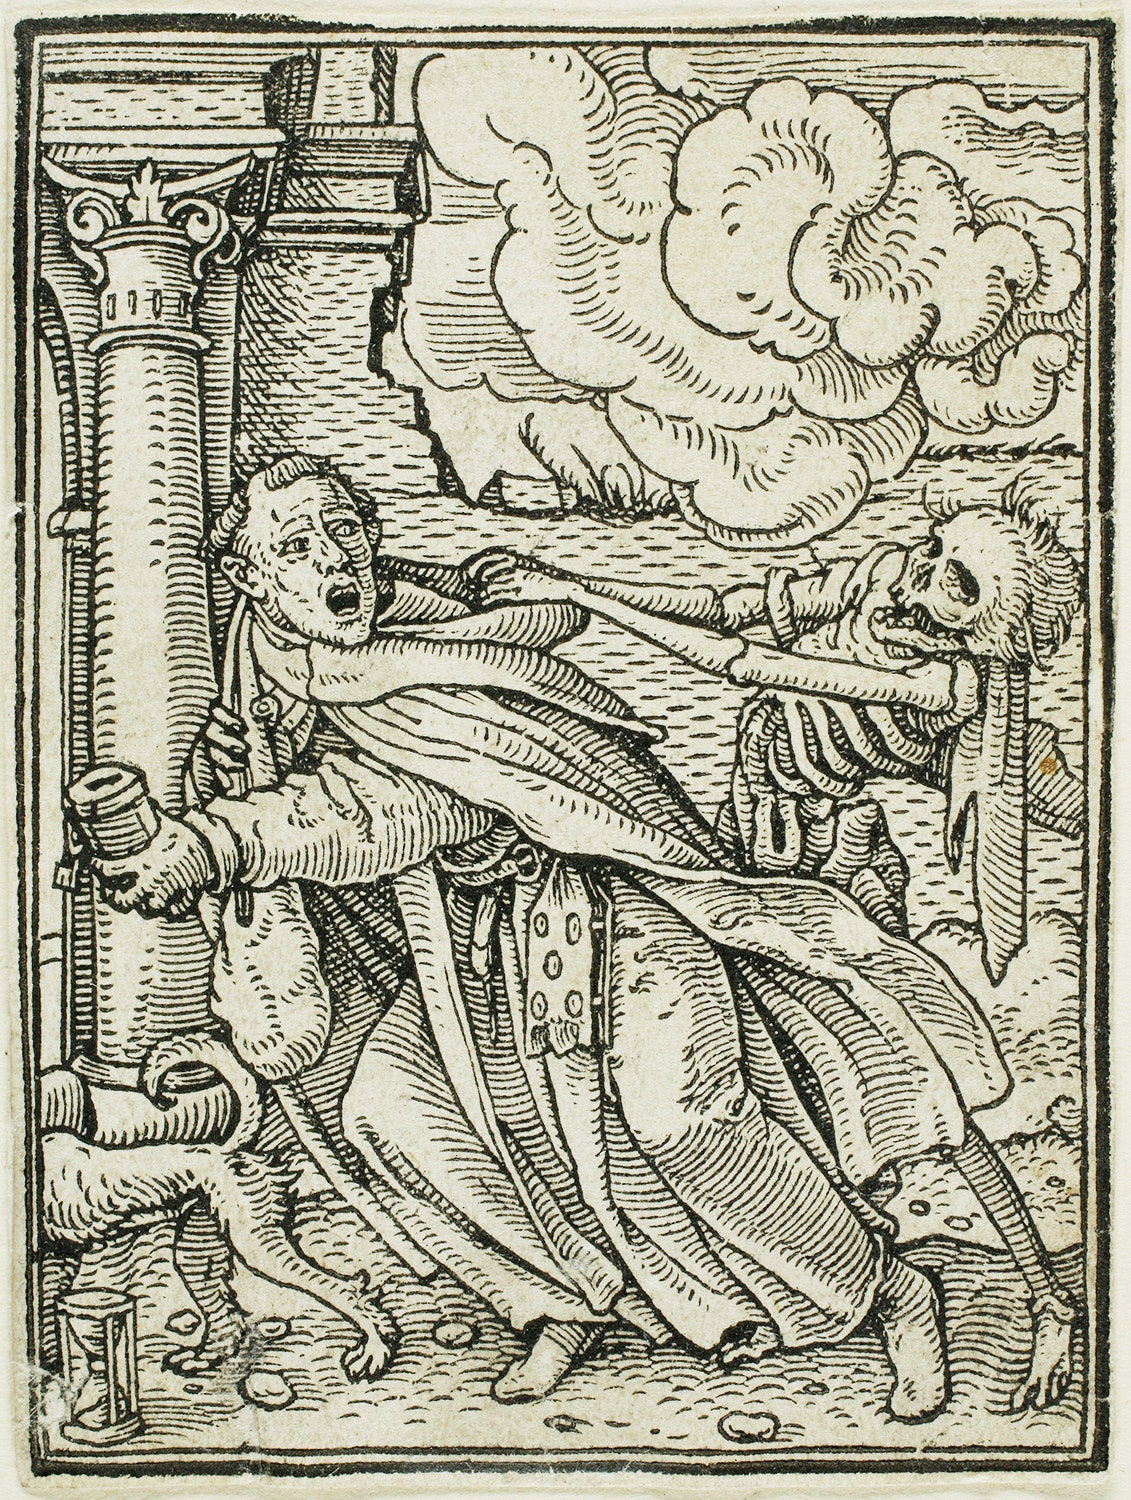 Artwork The Monk by Hans Holbein.